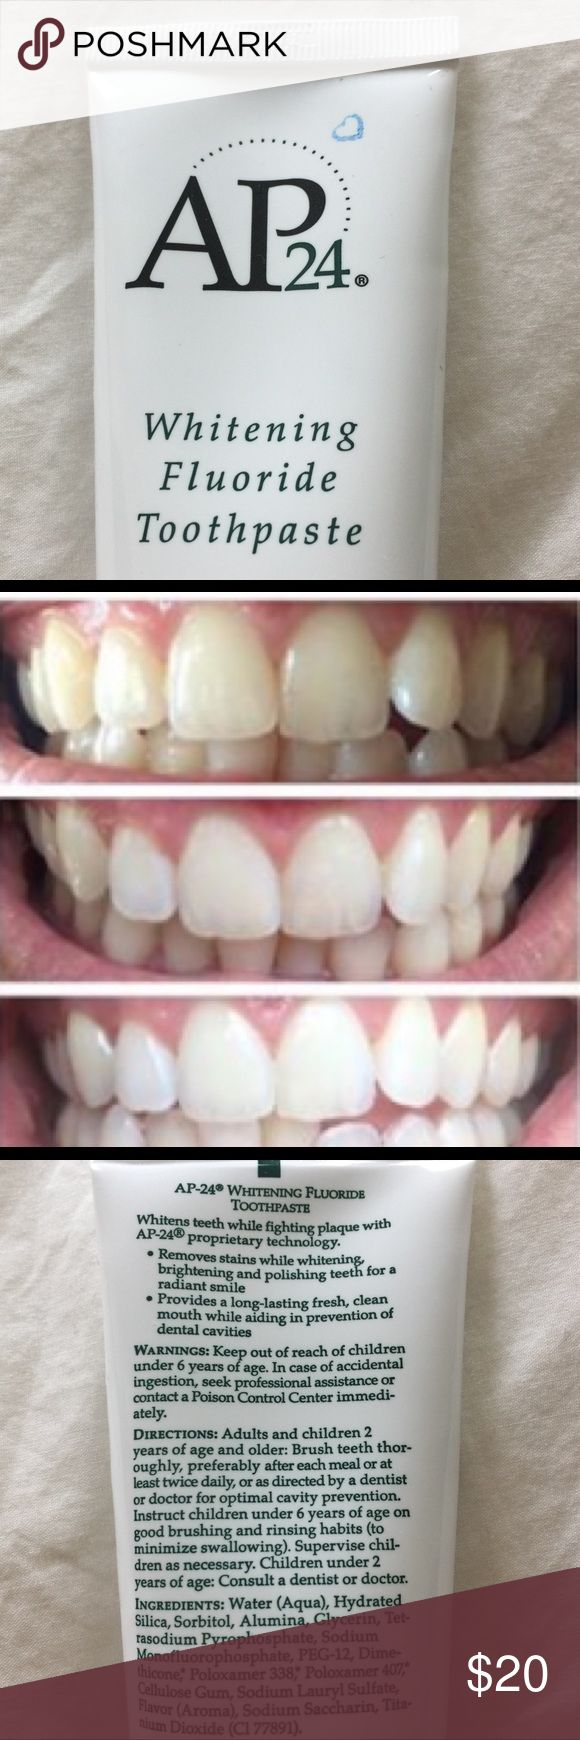 Colgate teeth whitening teeth whitening products pinterest teeth - Amazing Whitening Toothpaste Do You Want Whiter Teeth This Is The Most Amazing Product